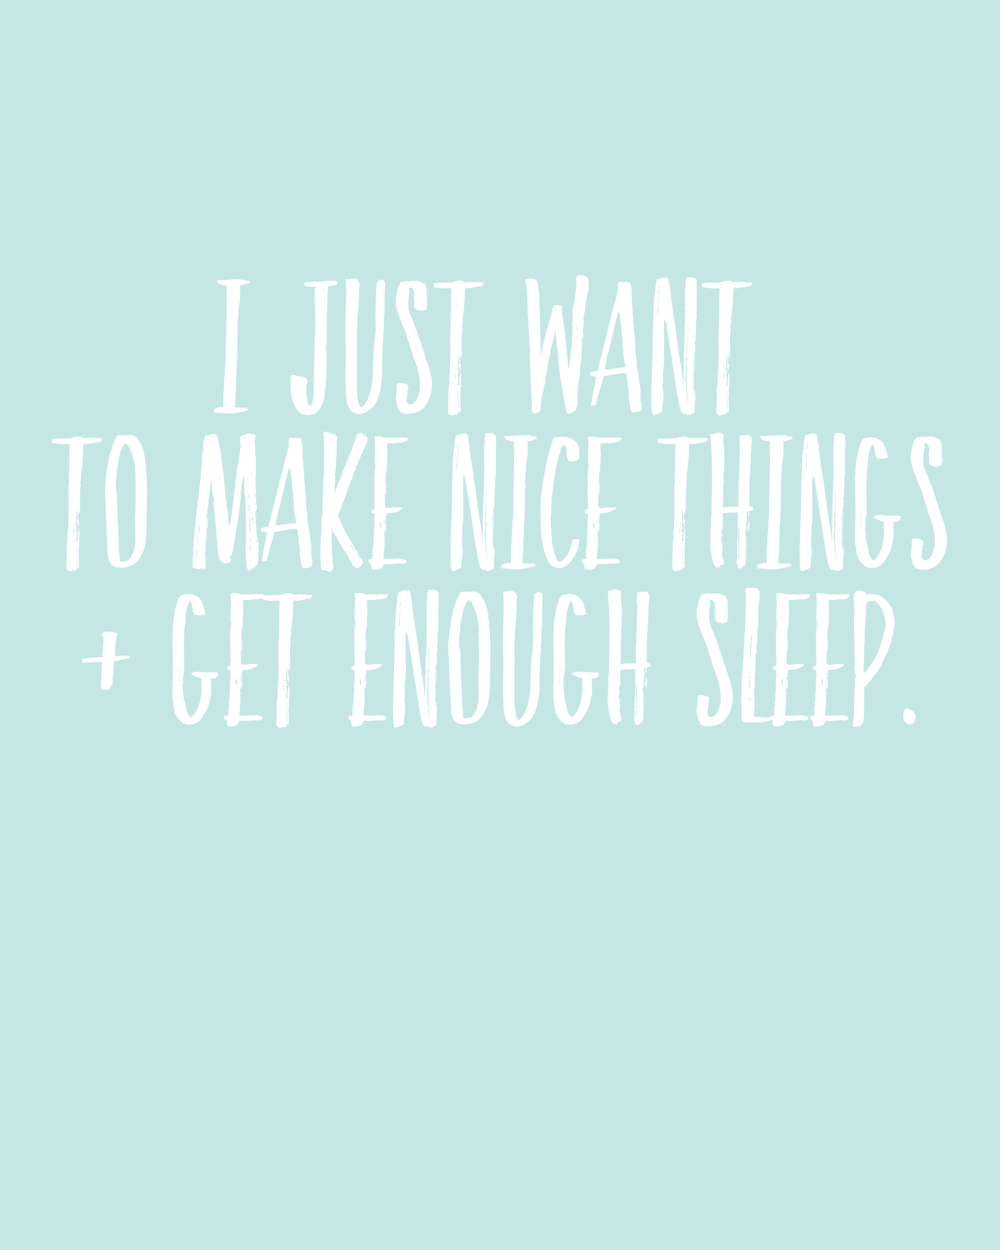 I just want to make nice things and sleep. Free printable.